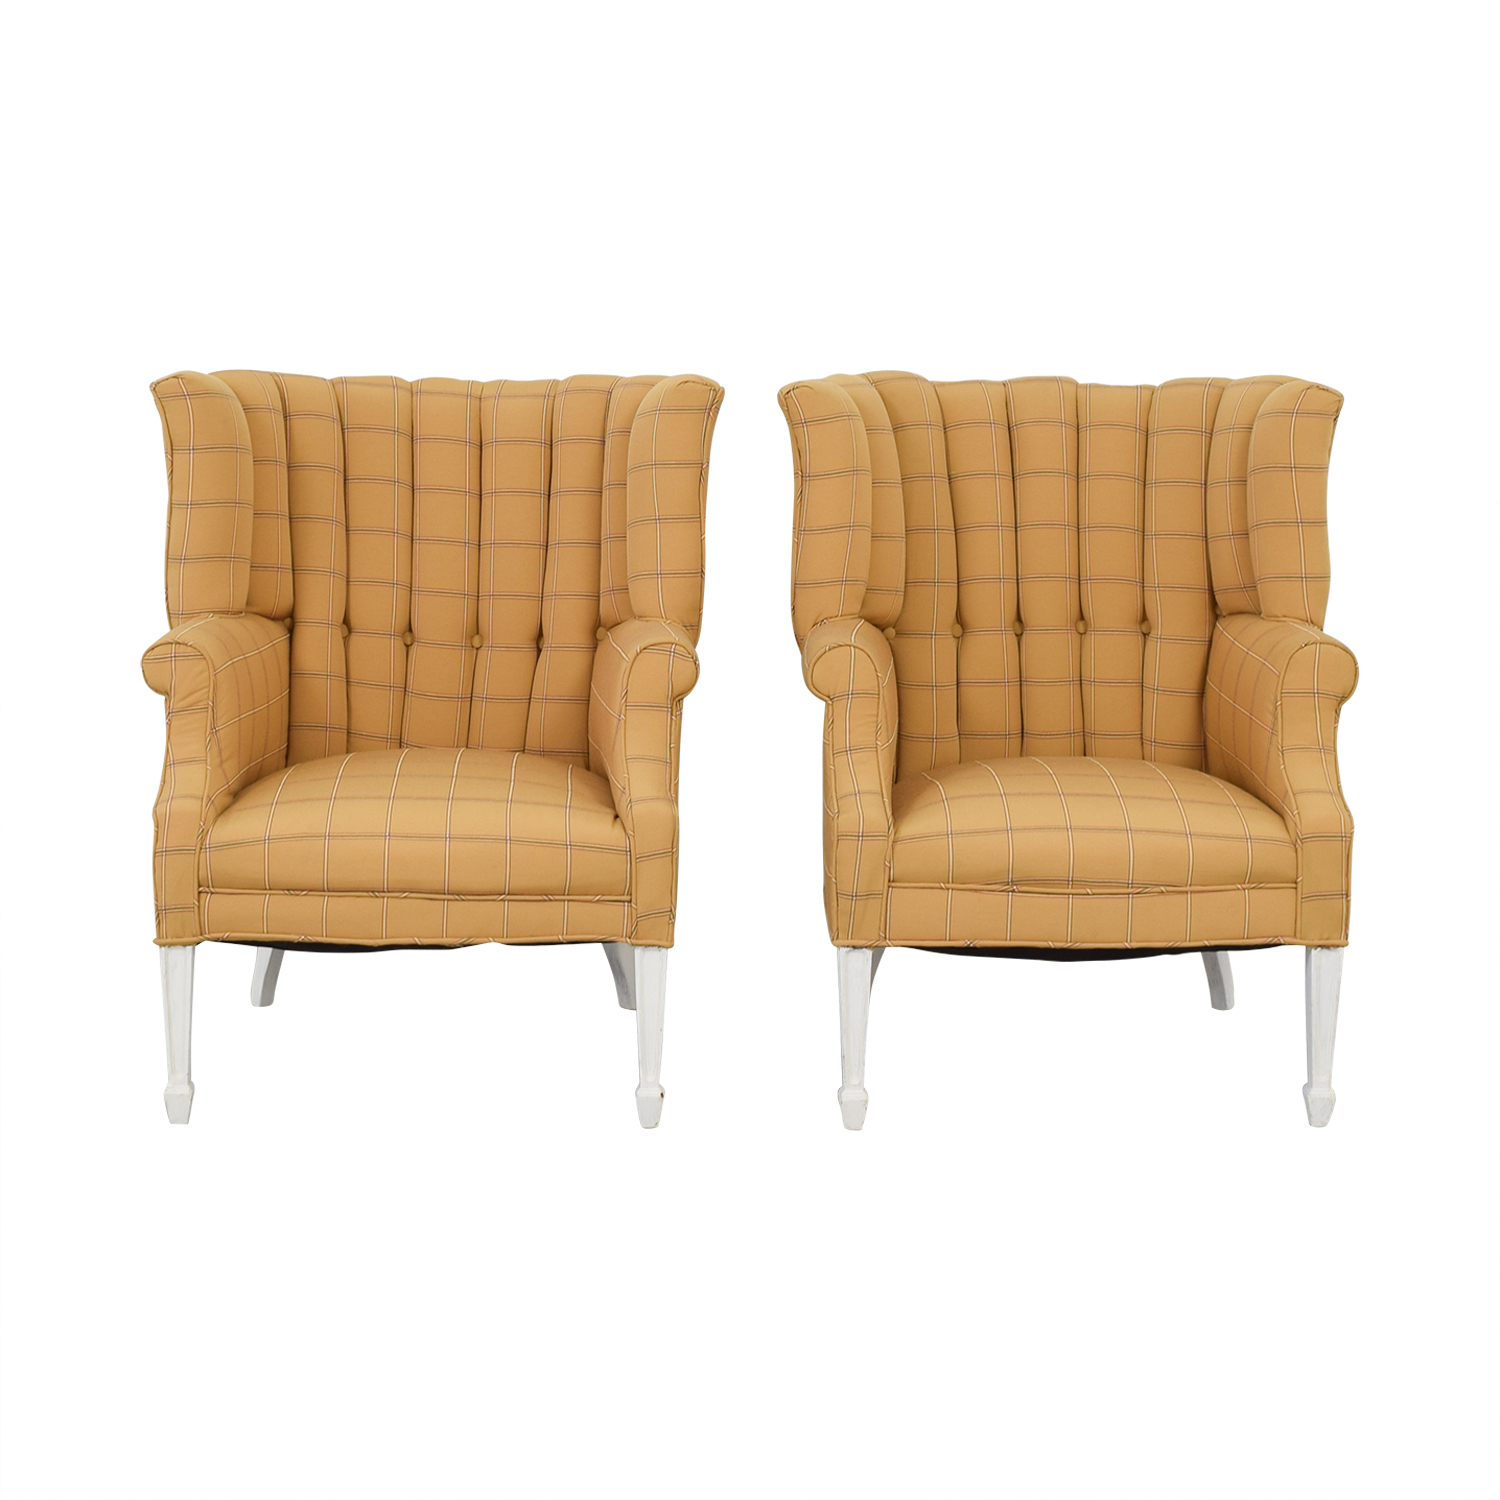 Vintage Yellow and Beige Plaid Wing Back Accent Chairs Beige yellow